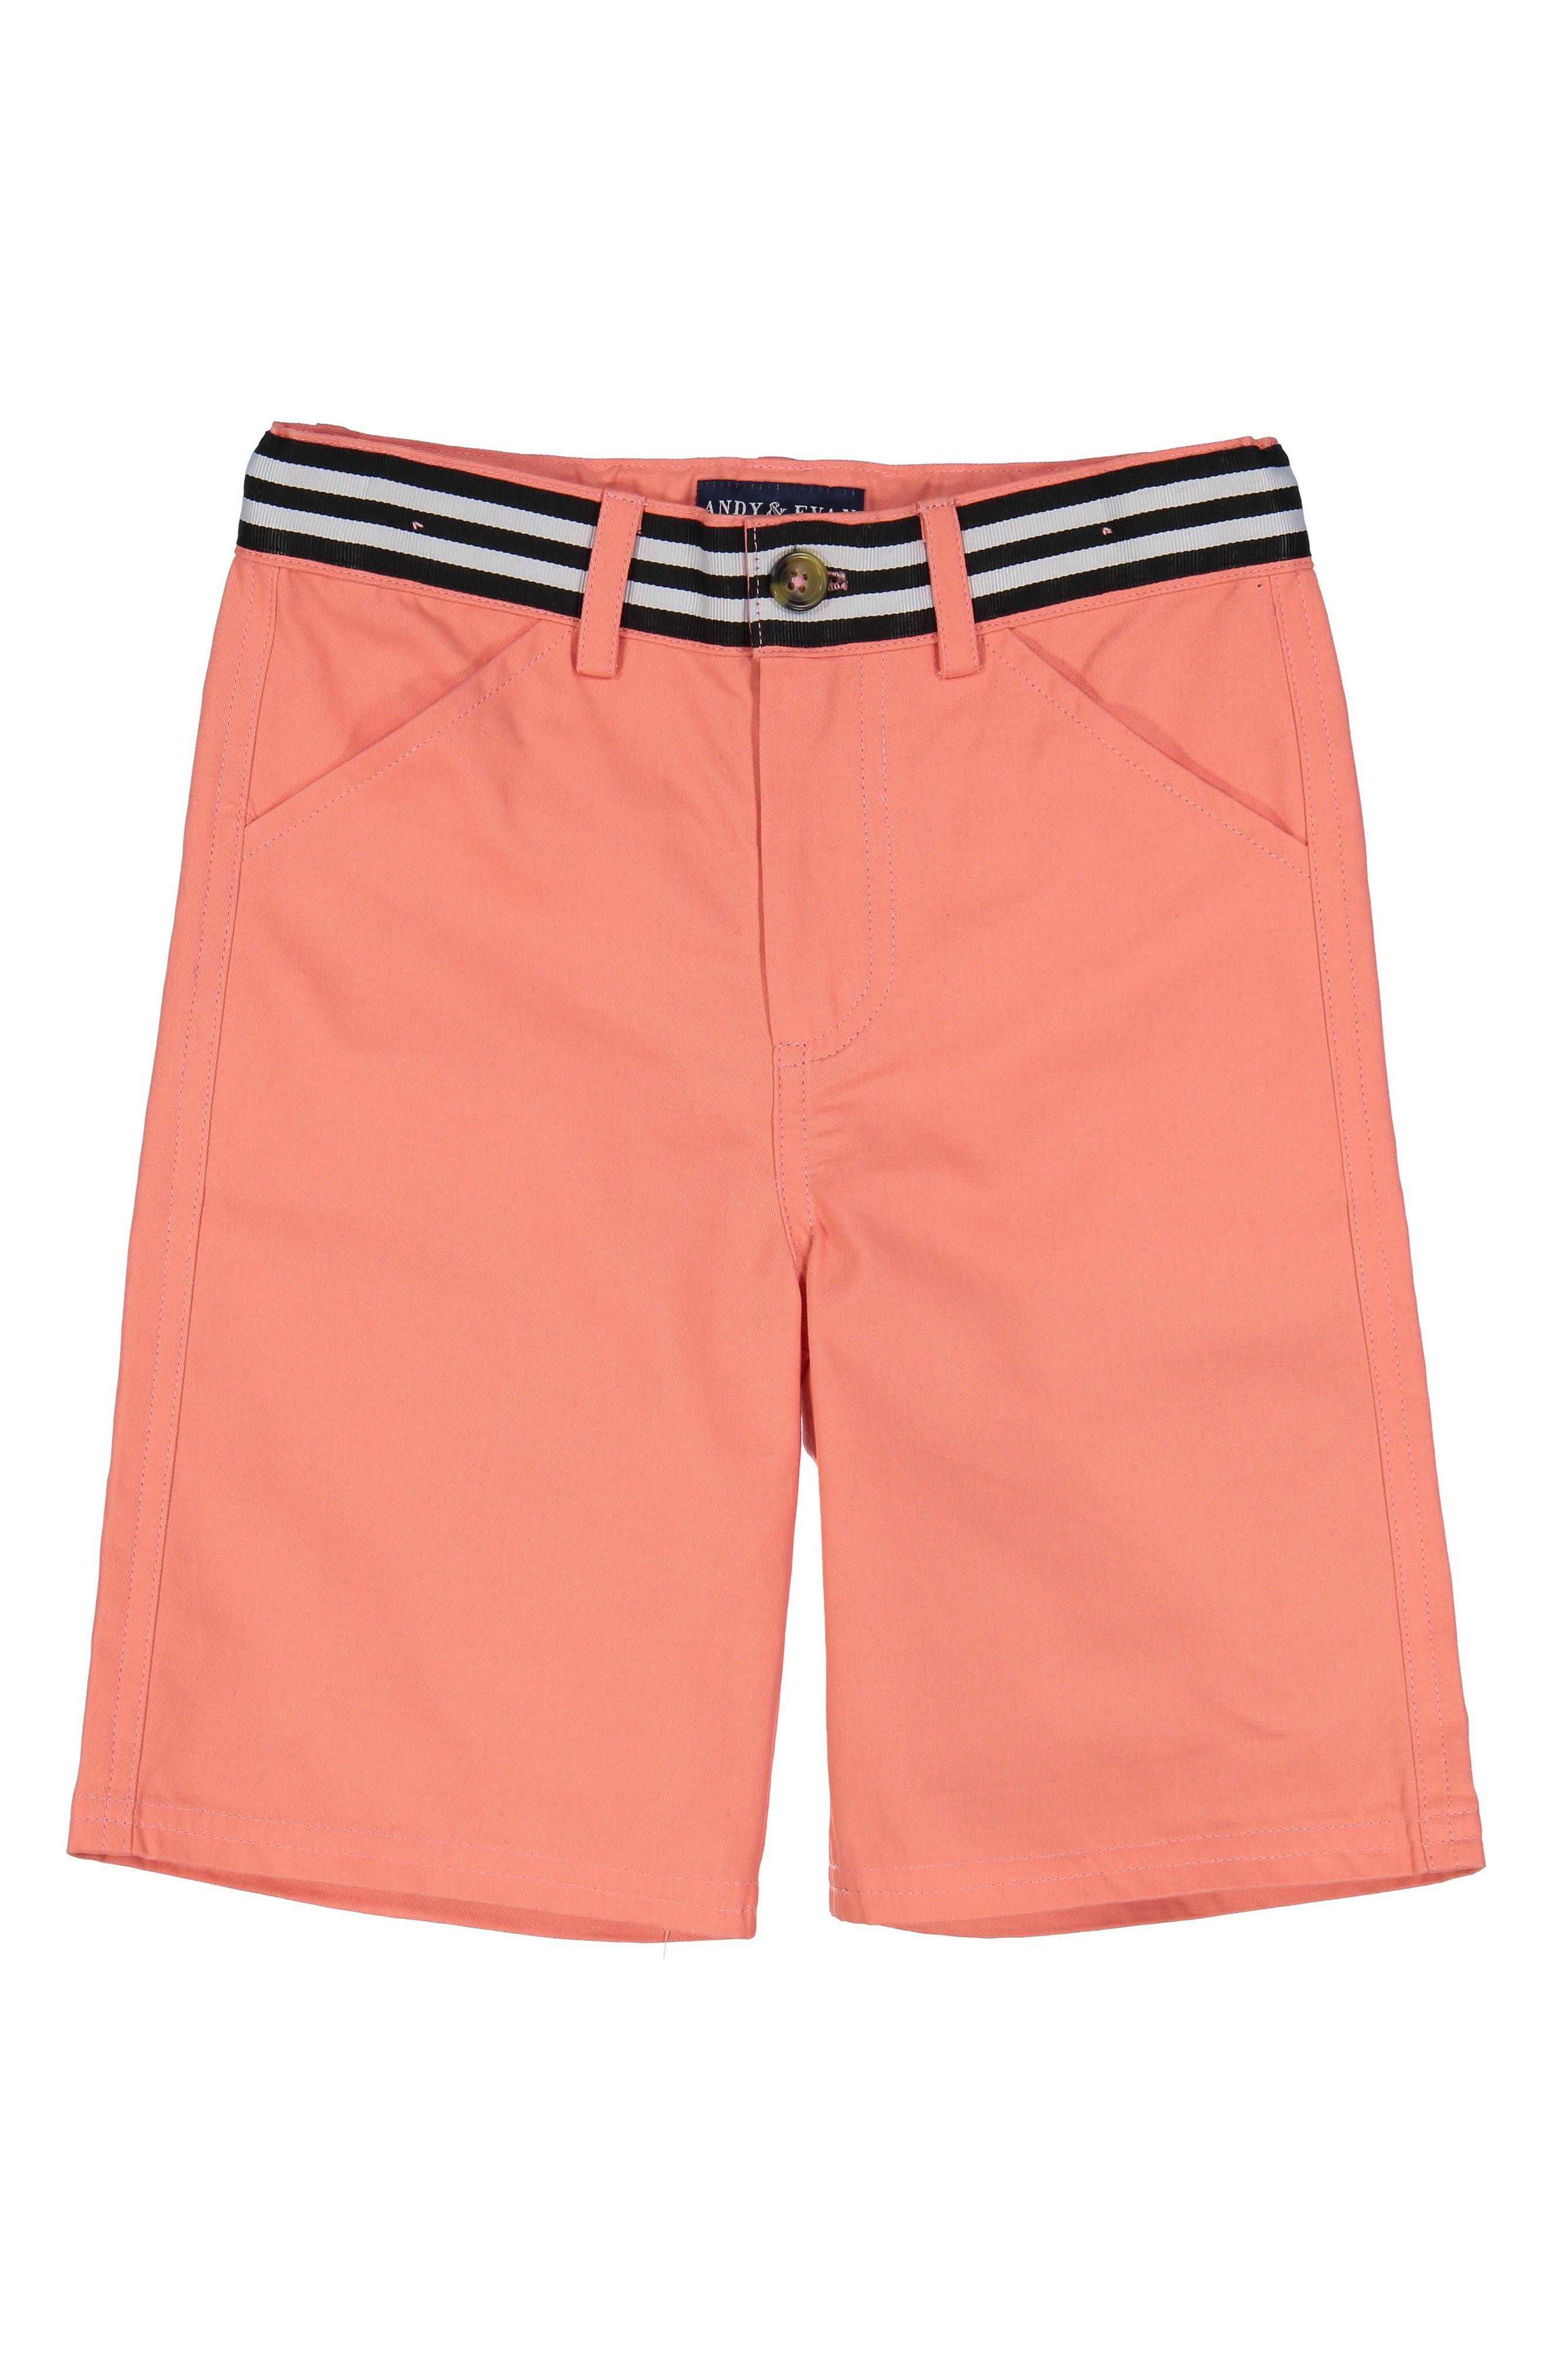 Stretch Cotton Shorts,                             Main thumbnail 1, color,                             Coral